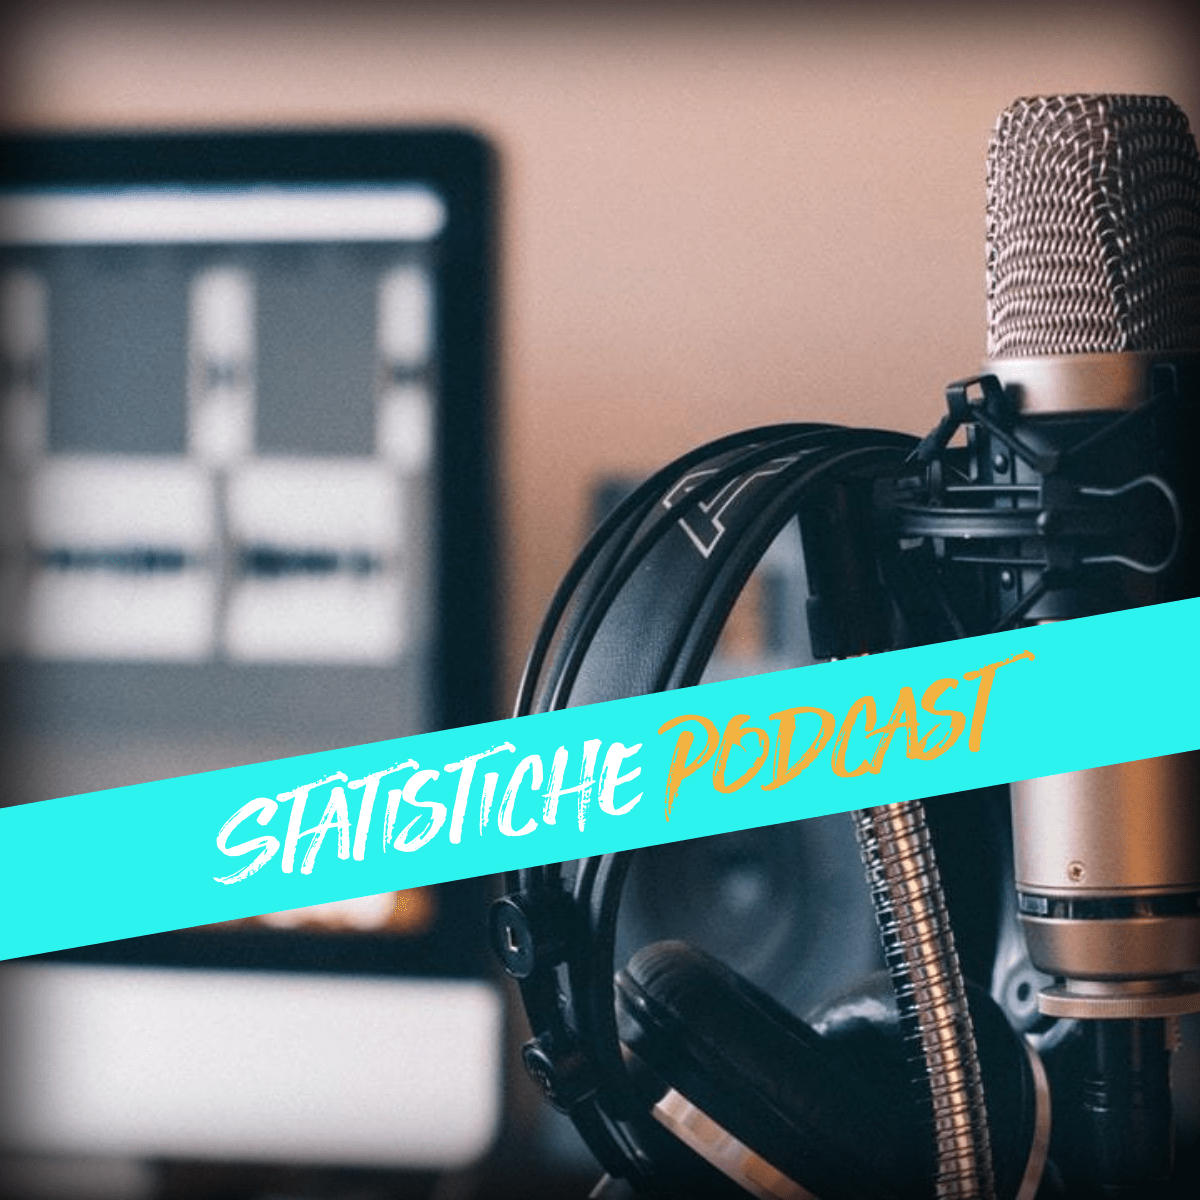 statistiche podcast featured image